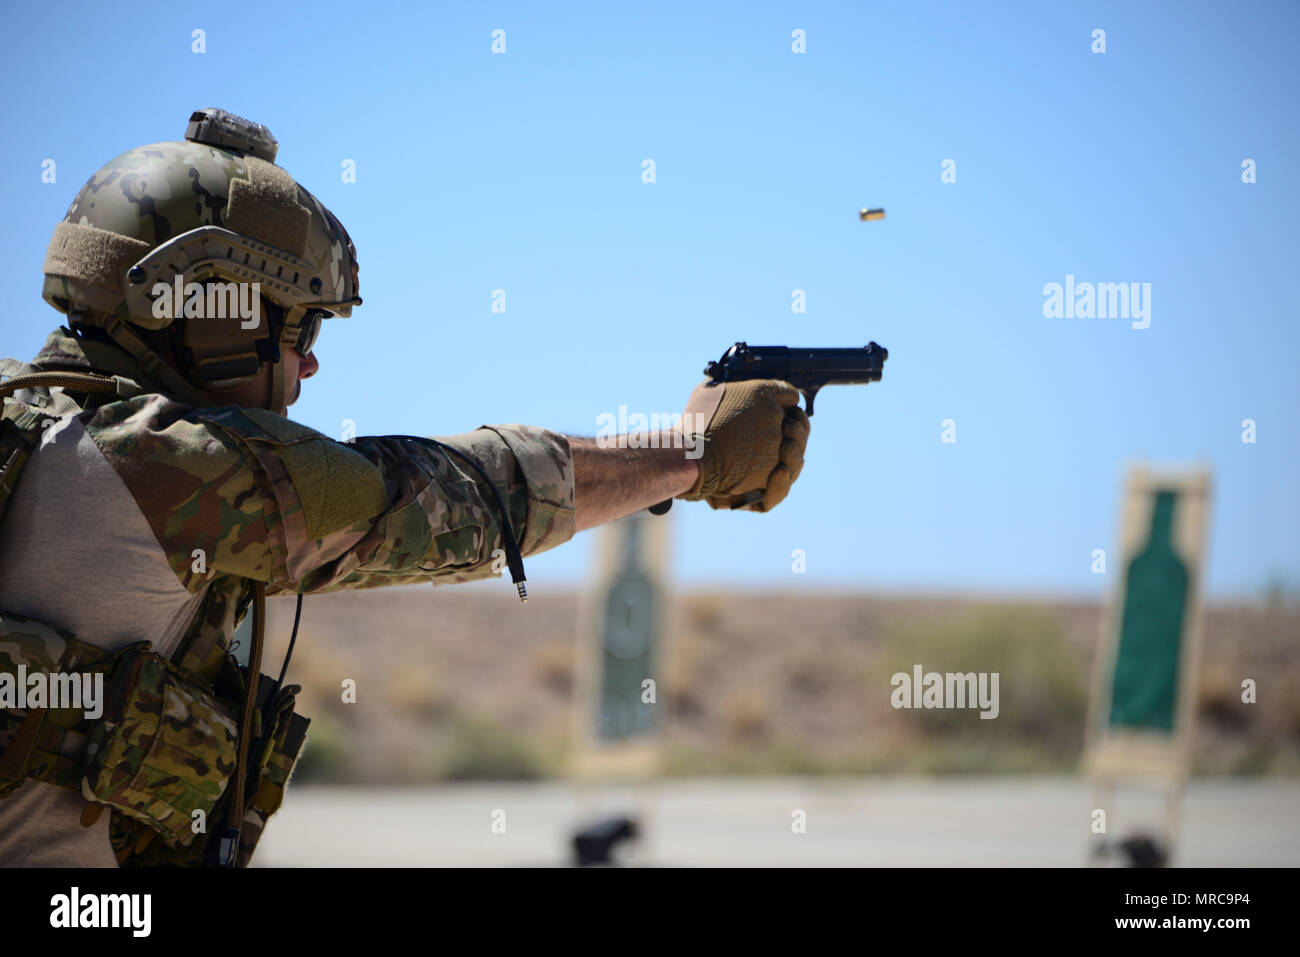 A U.S. Air Force pararescueman fires an M9 pistol at a target during the Guardian Angel Mission Qualification Training course at Davis-Monthan Air Force Base, Ariz., May 17, 2017. The MQT is a 90 day course that takes pararescuemen who have completed Air Education and Training Command schooling and helps them achieve their 5-level qualification. (U.S. Air Force photo by Airman 1st Class Nathan H. Barbour) - Stock Image